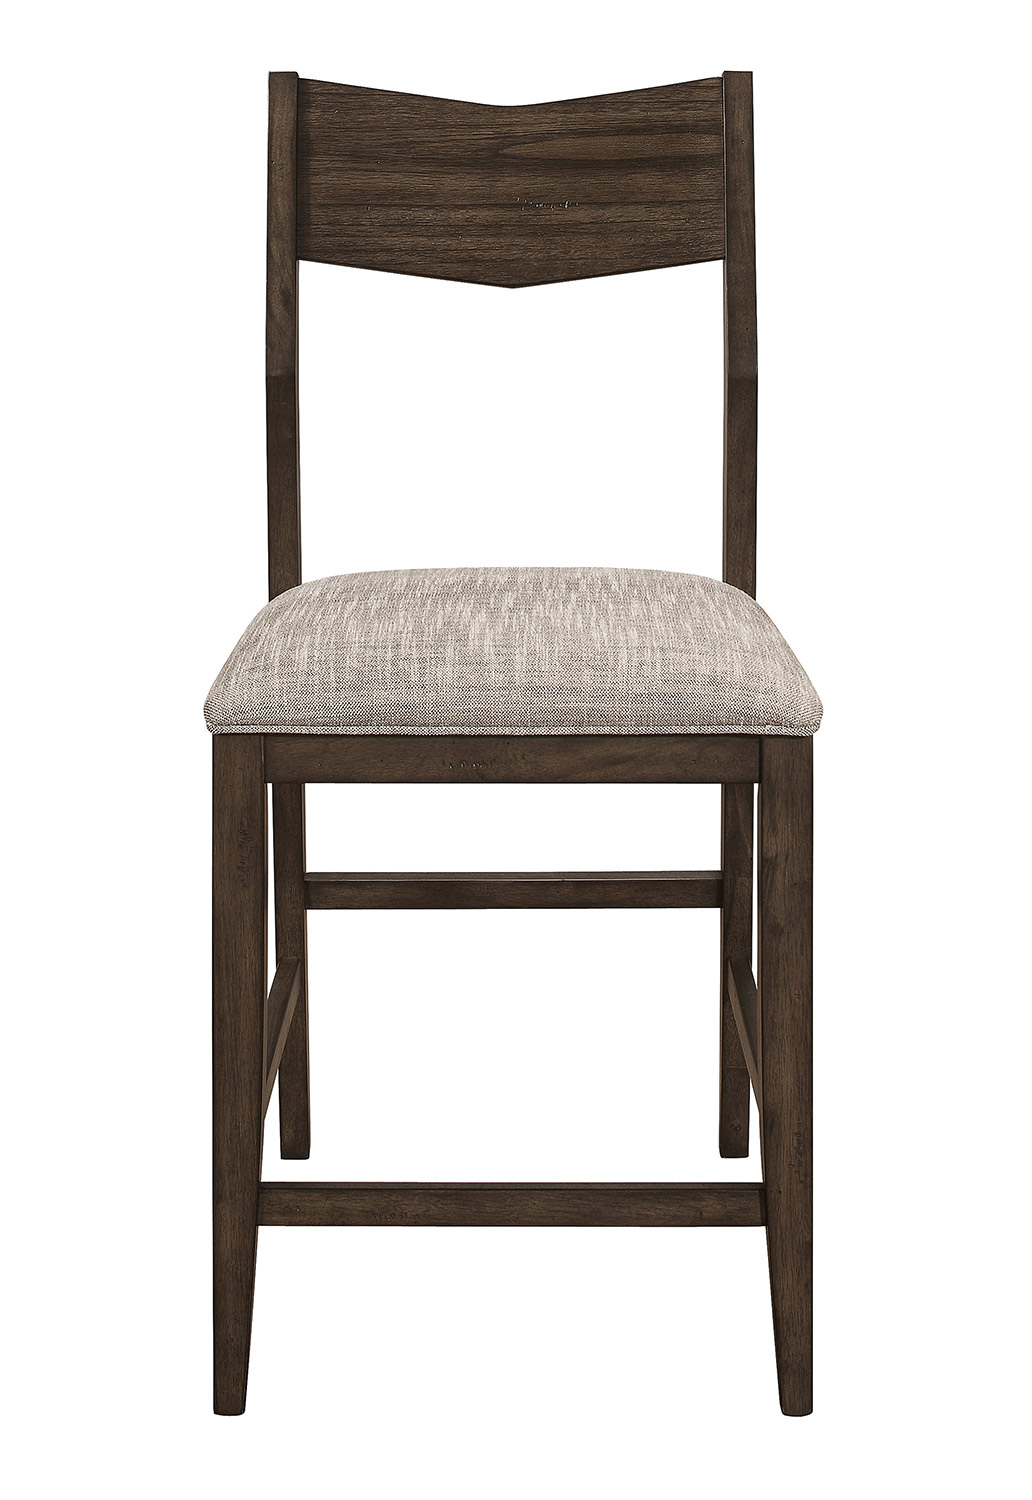 Homelegance Kirke Counter Height Chair - Brown